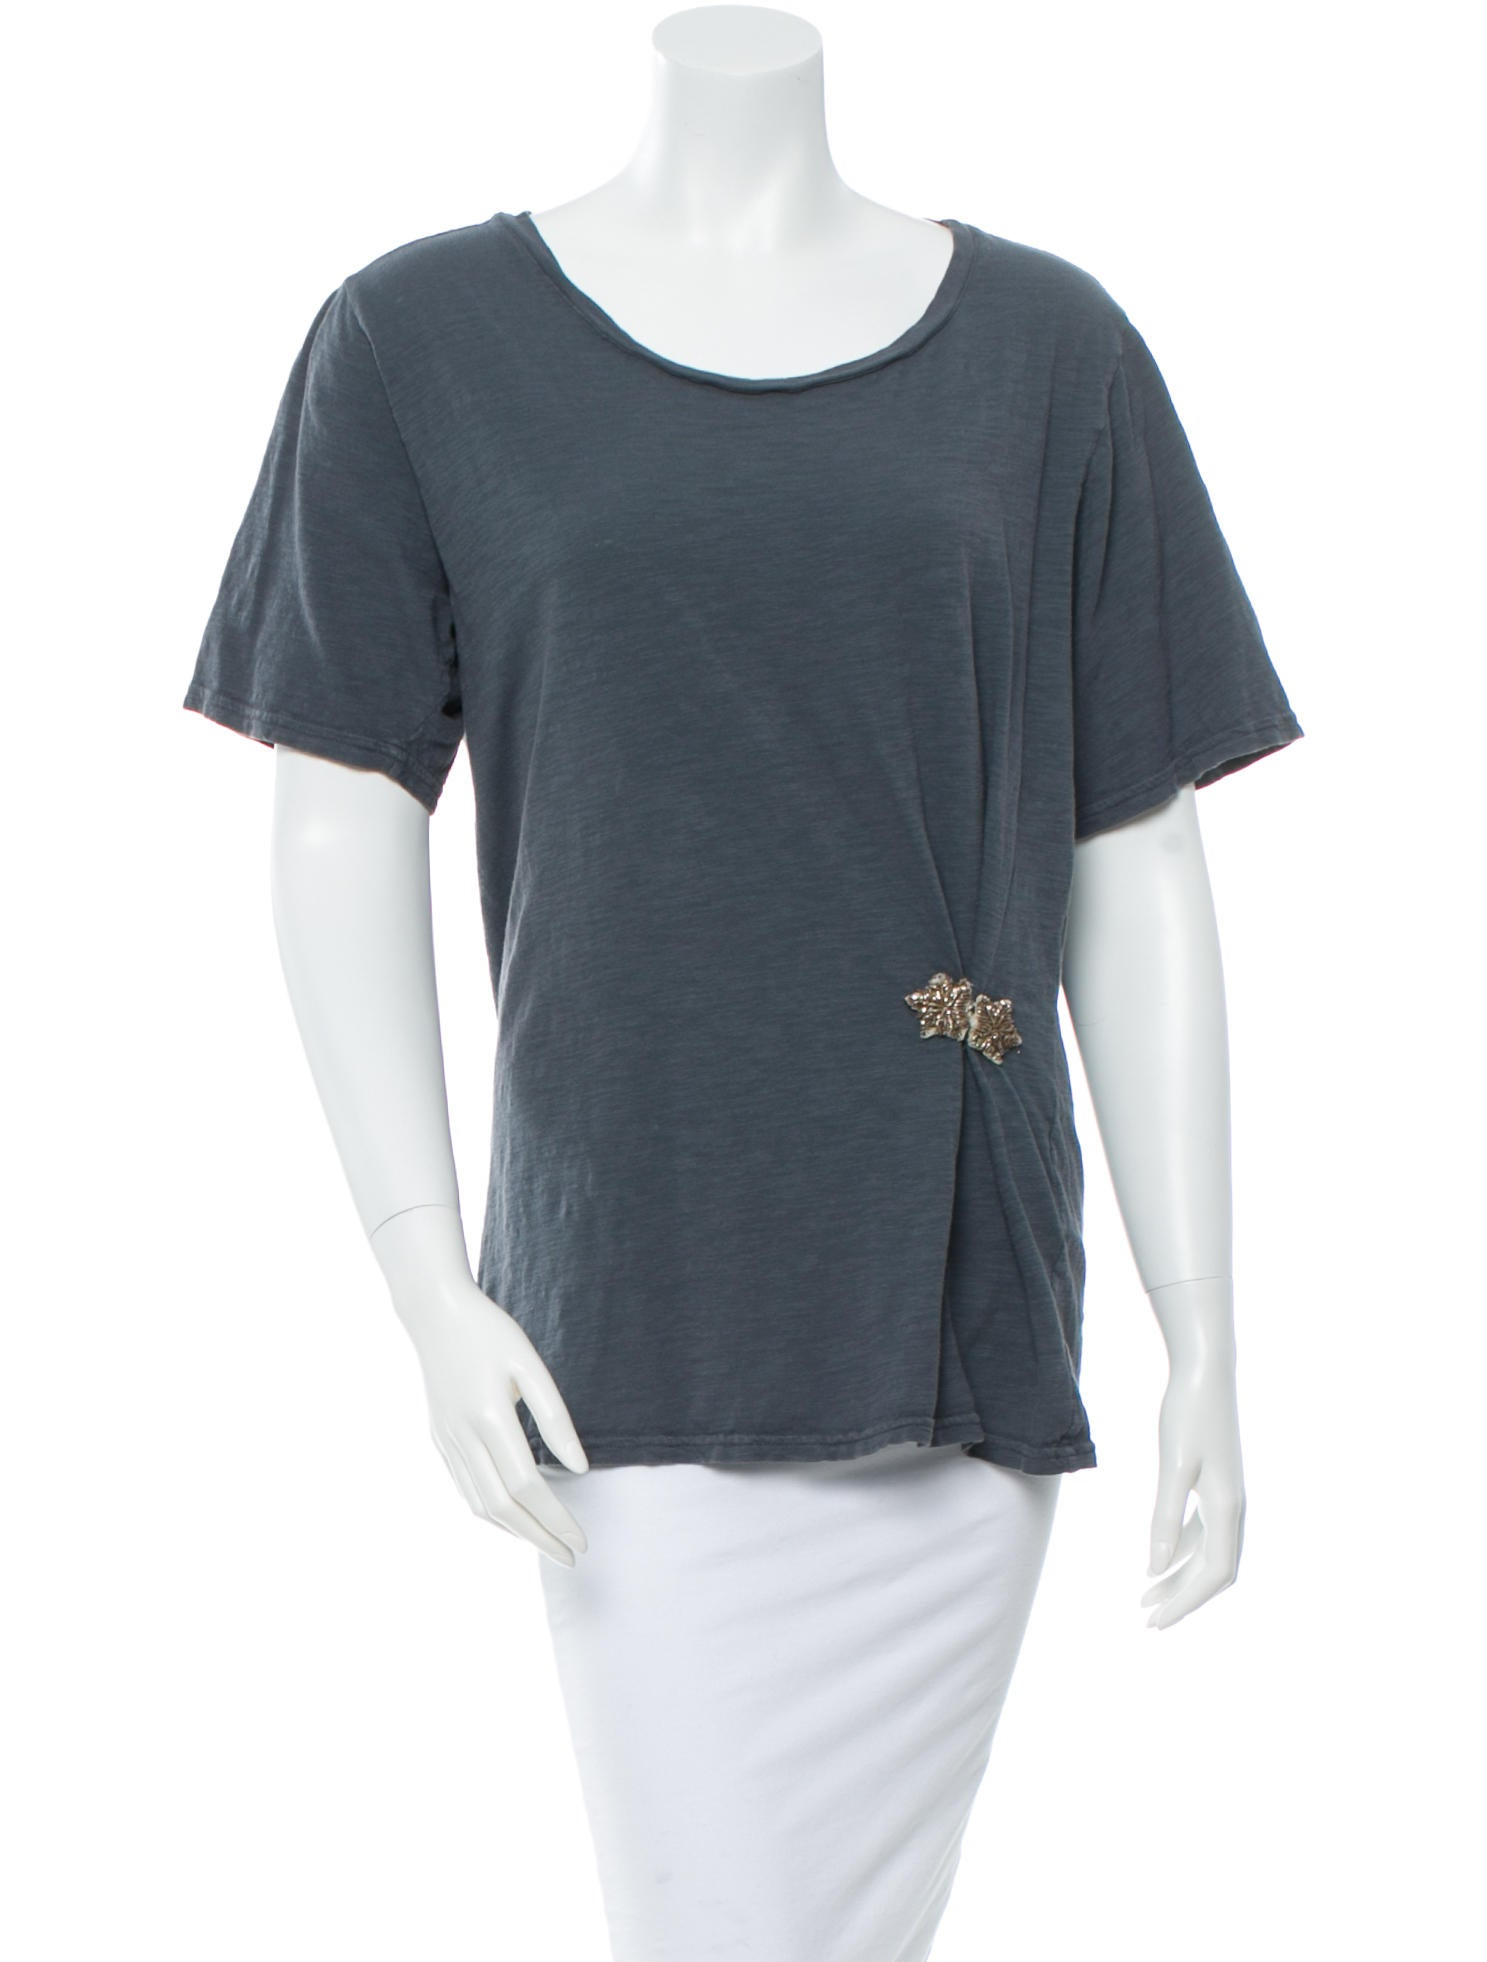 elizabeth and james t shirt clothing wei26670 the